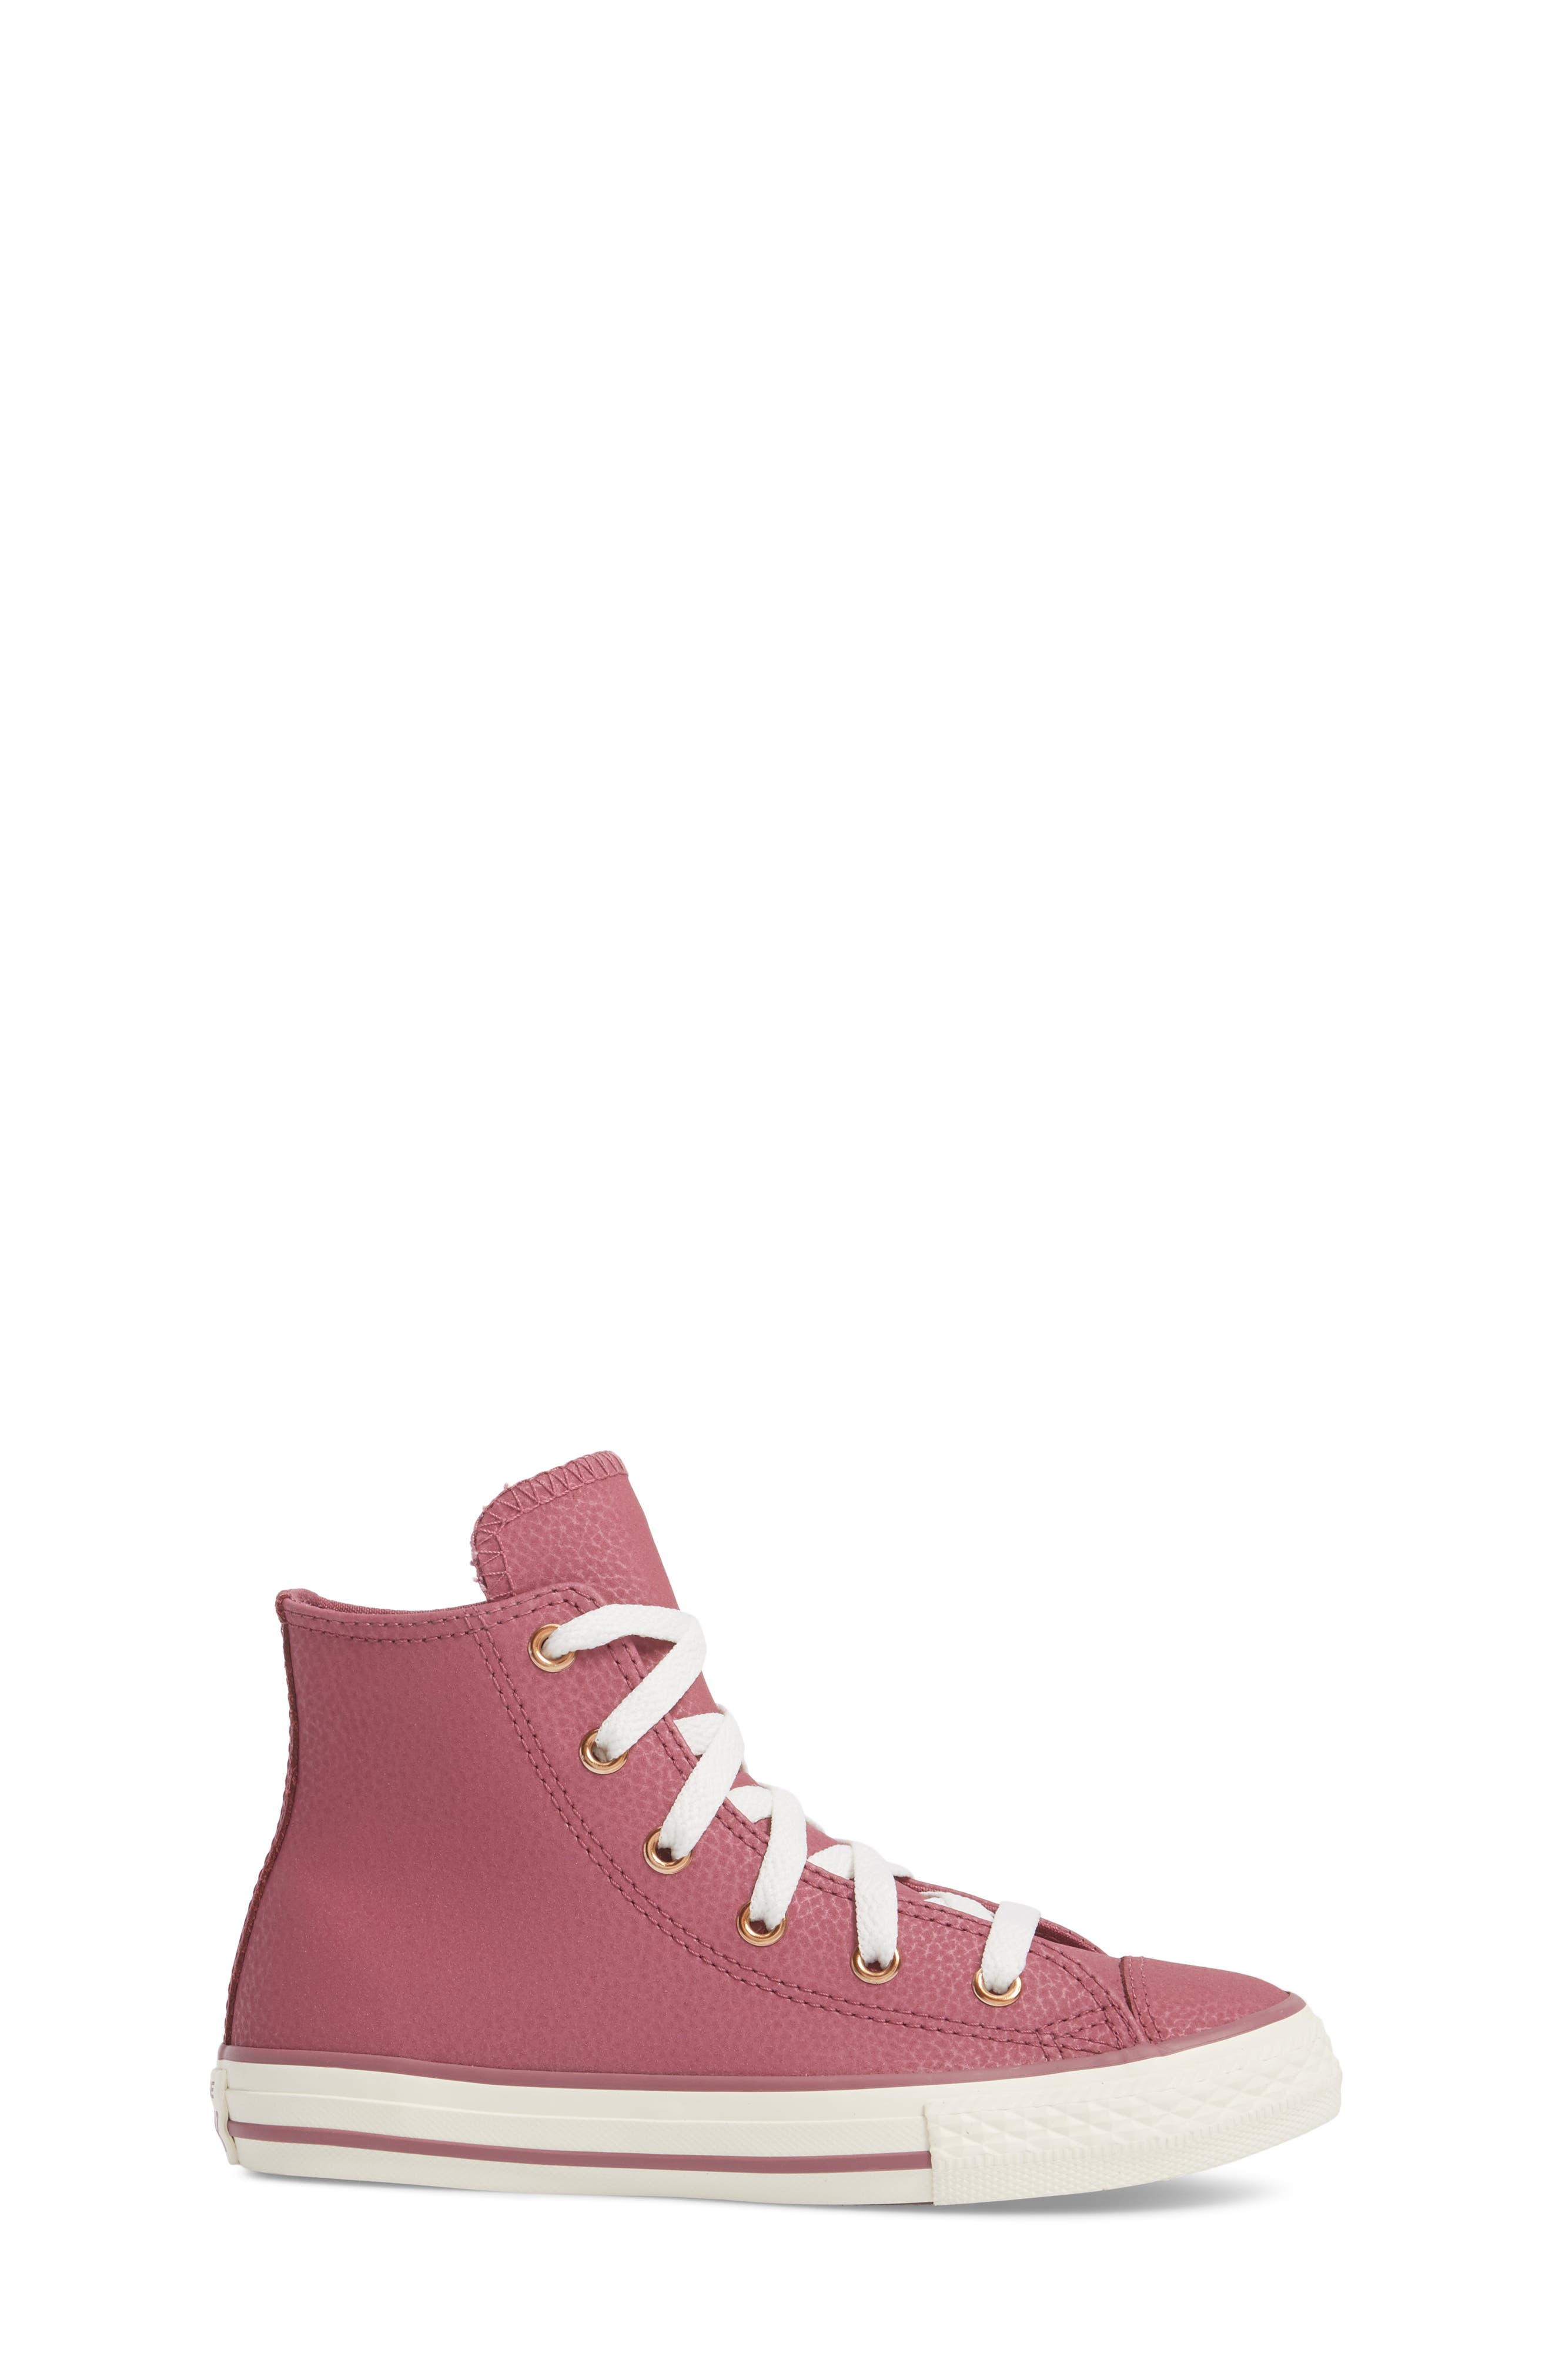 Chuck Taylor<sup>®</sup> All Star<sup>®</sup> High Top Sneaker,                             Alternate thumbnail 3, color,                             600